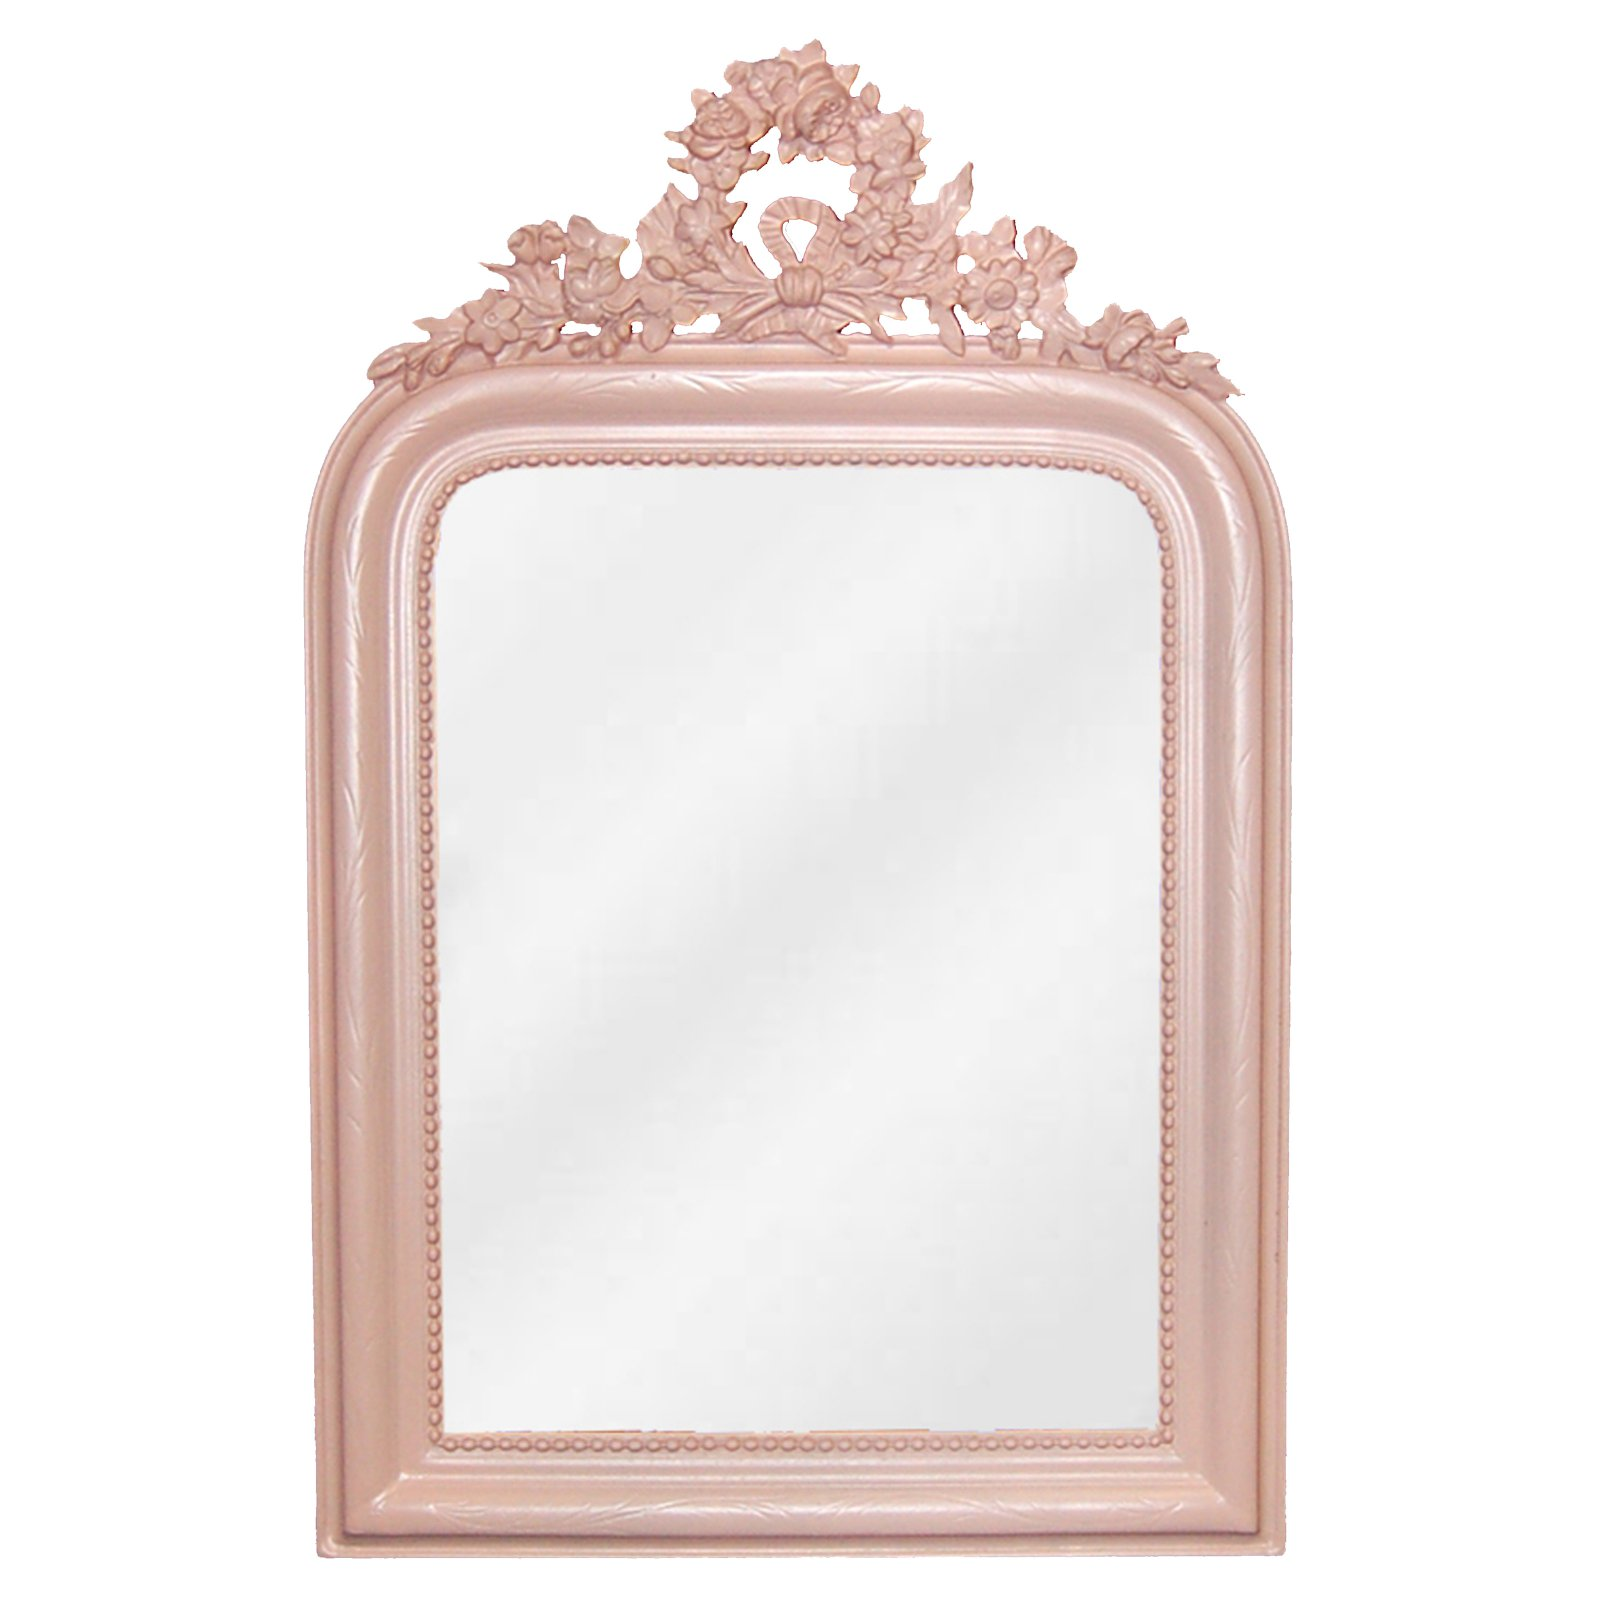 Hickory Manor House Wreath Rectangular Wall Mirror - 18W x 28H in.